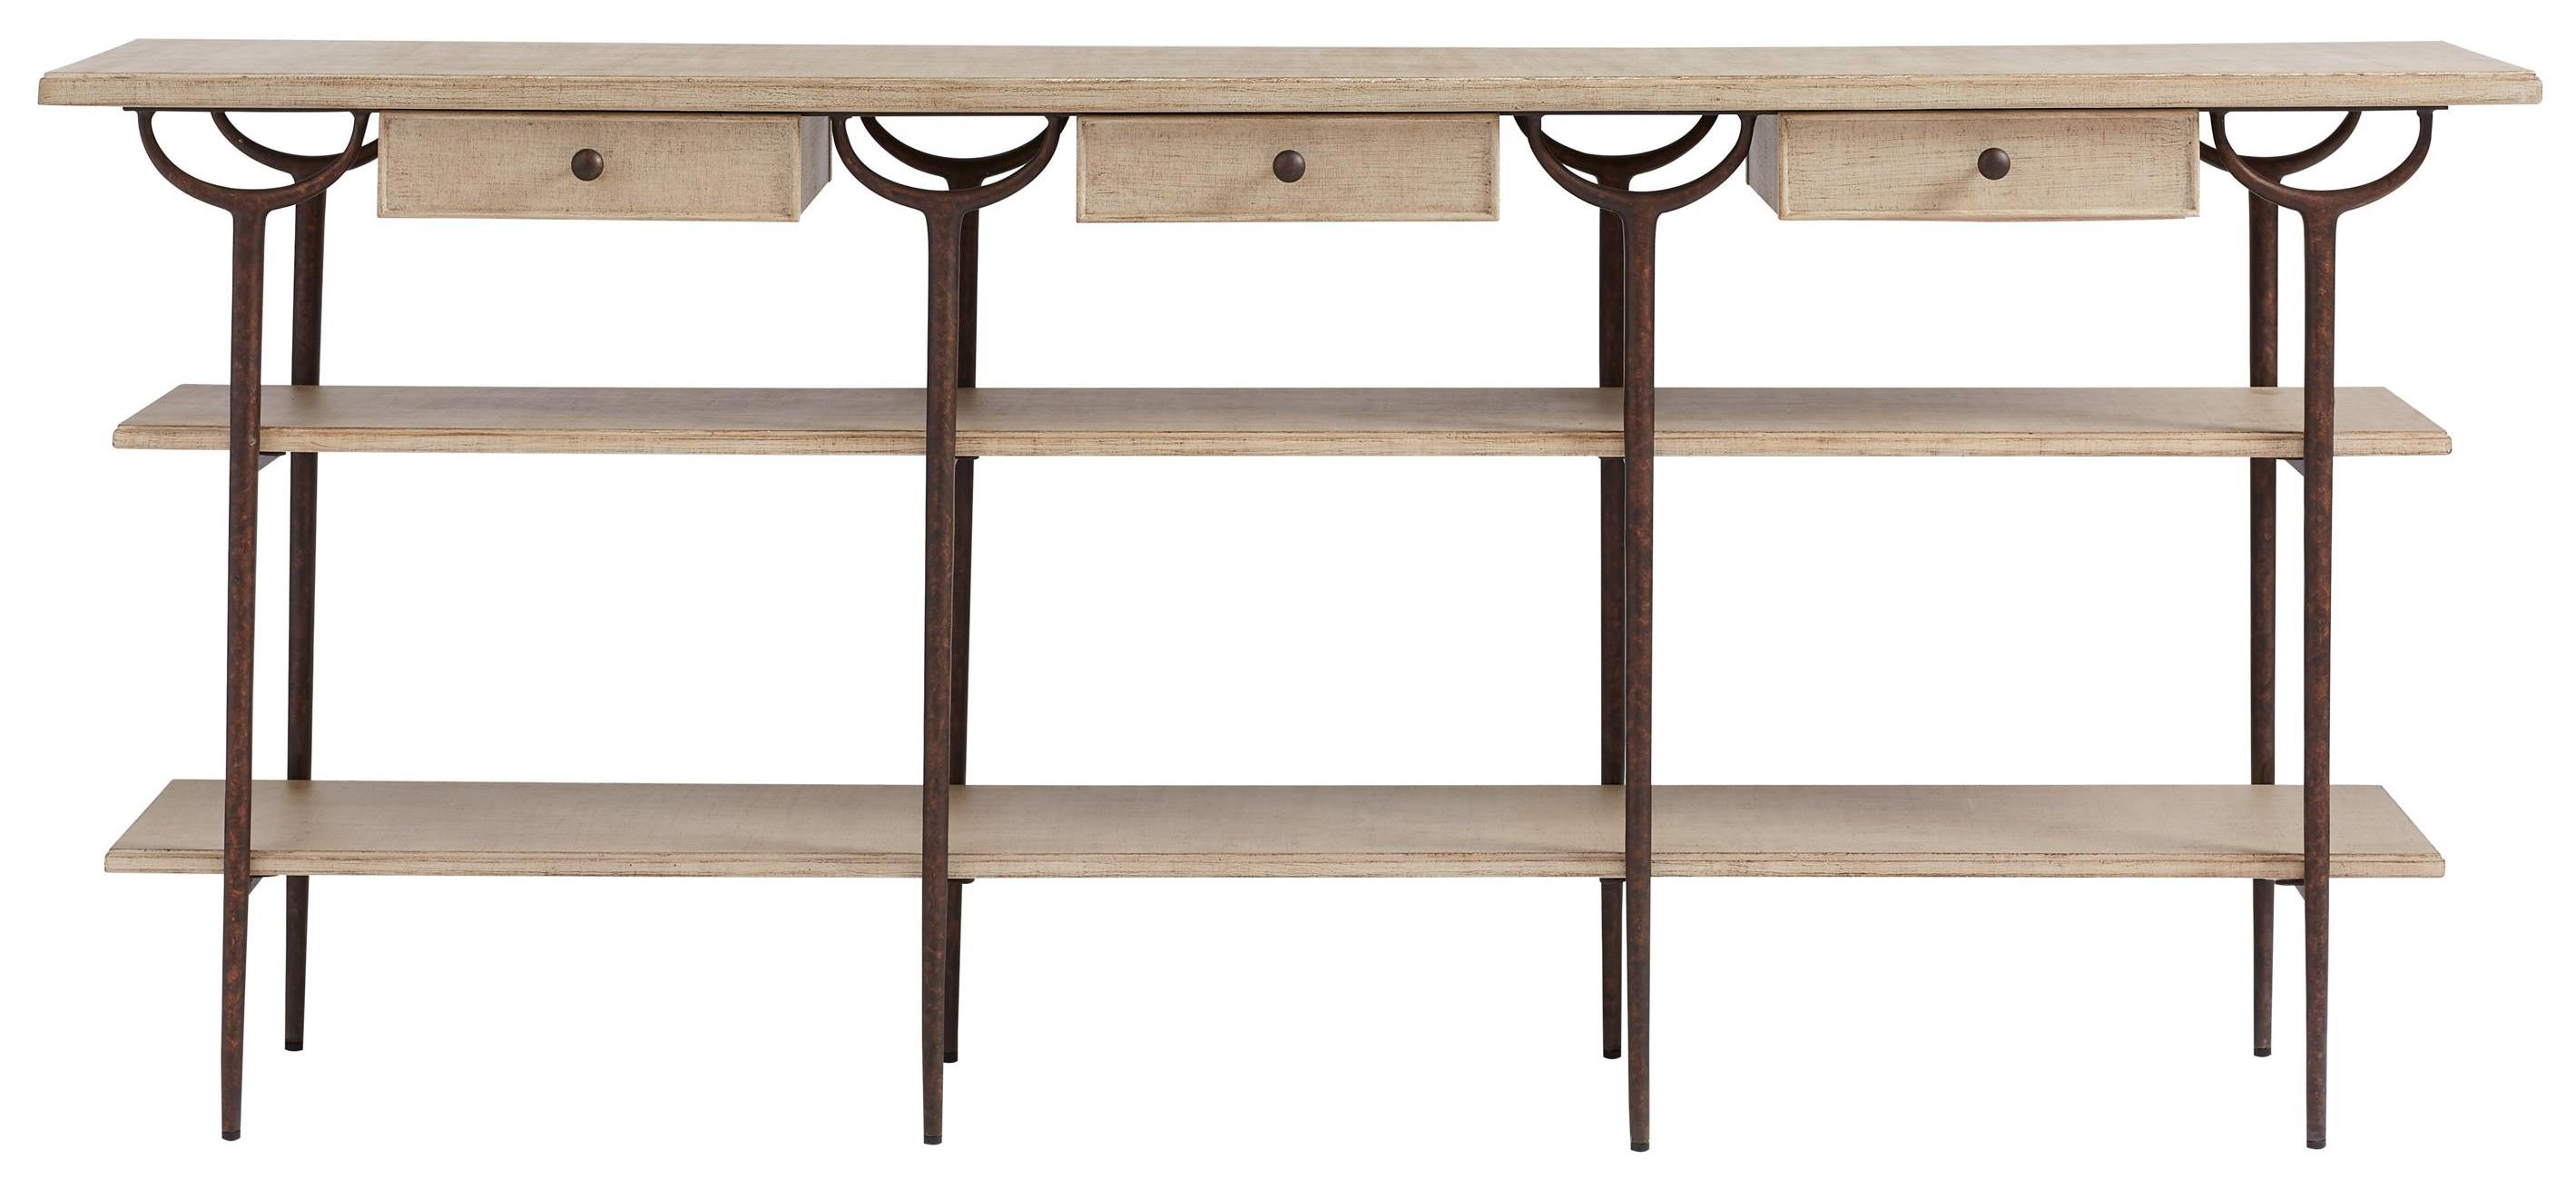 Stanley Furniture Villa Couture Asti Console Table - Item Number: 510-25-05